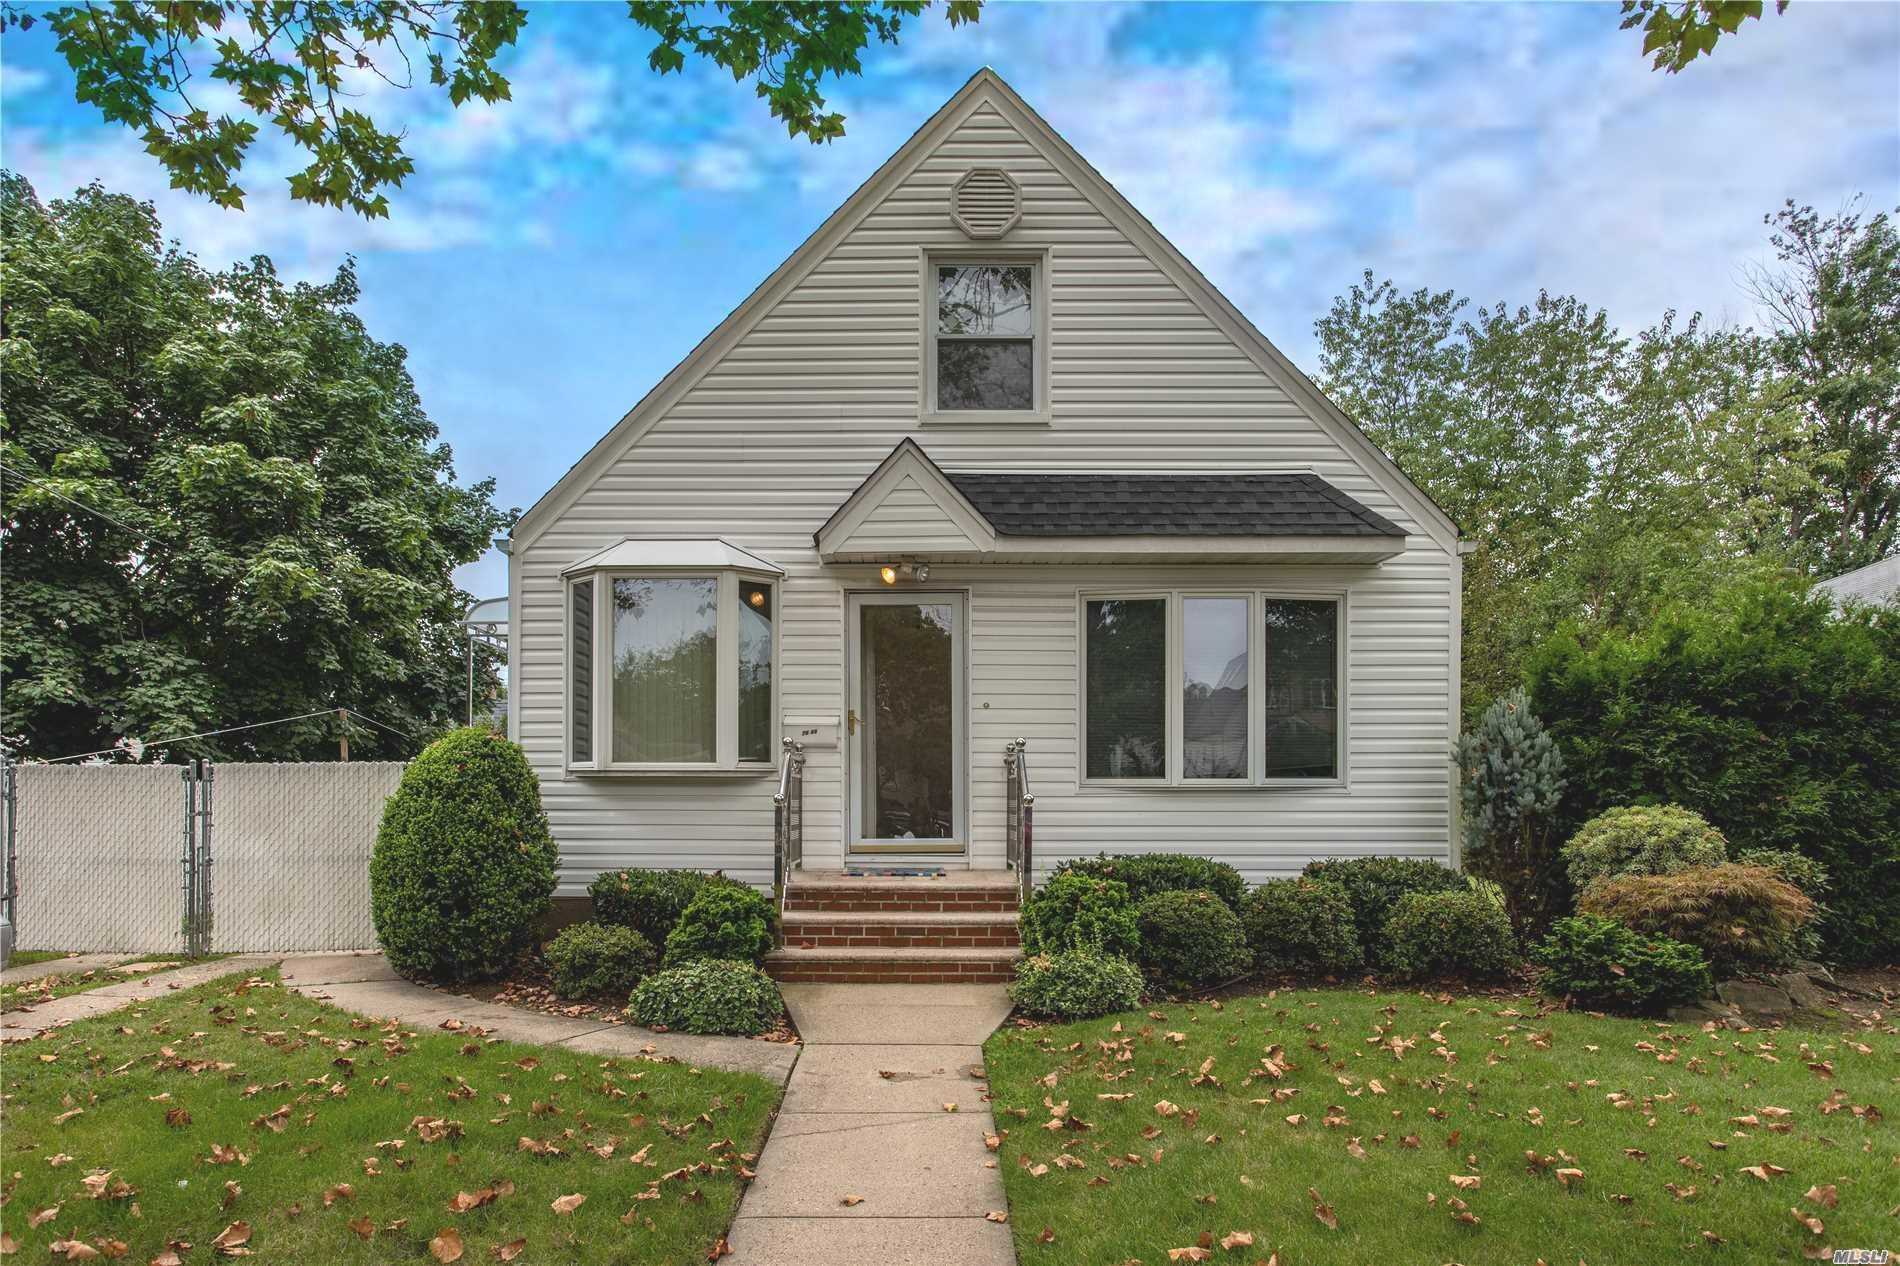 Beautiful Home, 3 Bedrooms,  2 Bathrooms Located In A Great Location. All Information Included But Not Limited To Taxes And School District Information Is Deemed Accurate But Must Be Verified Solely By The Buyer.